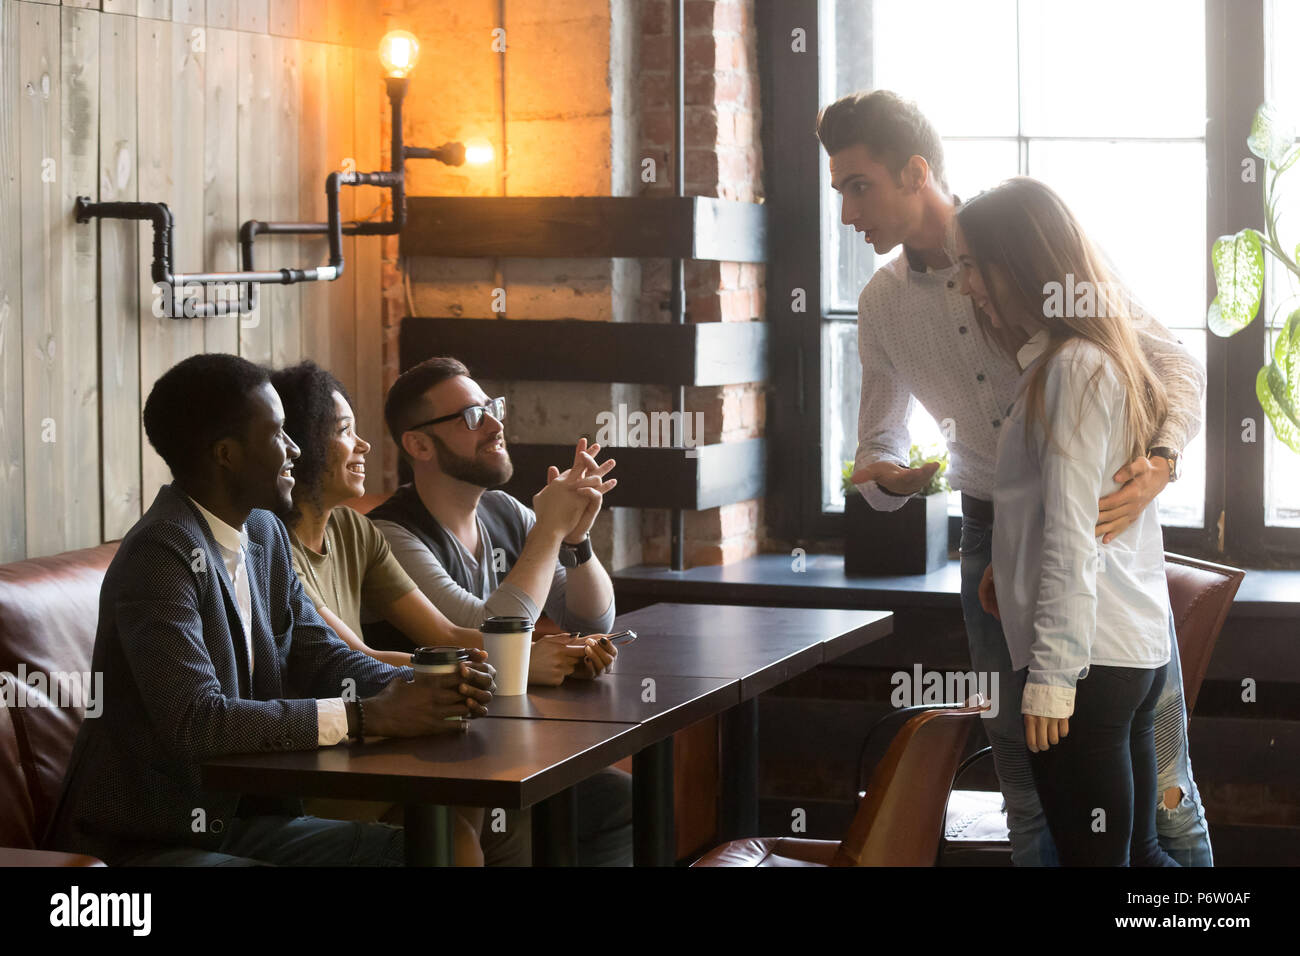 Caucasian man introducing girlfriend to friends at cafe - Stock Image